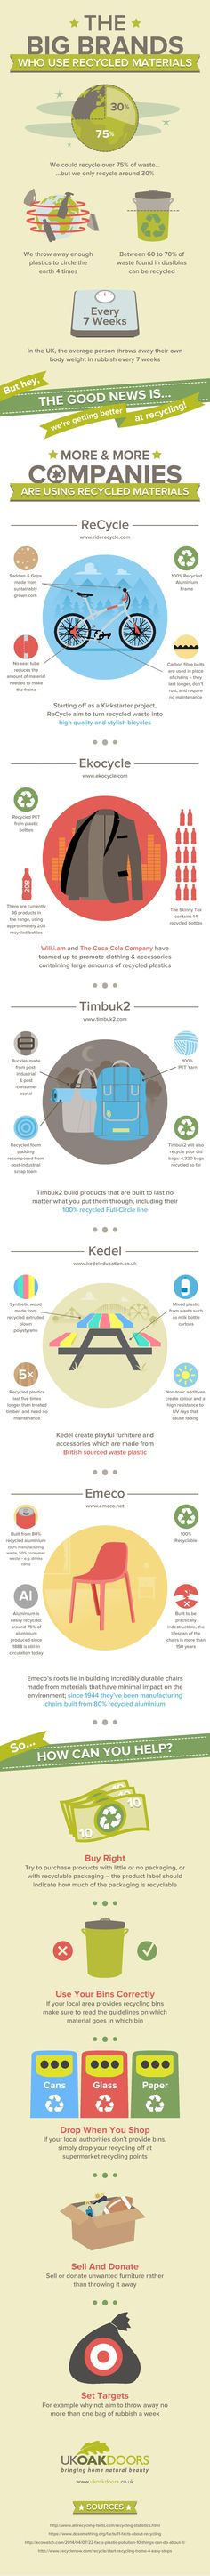 The Big Brands Who Use Recycled Materials #infographic #Brands #Recycling #Green